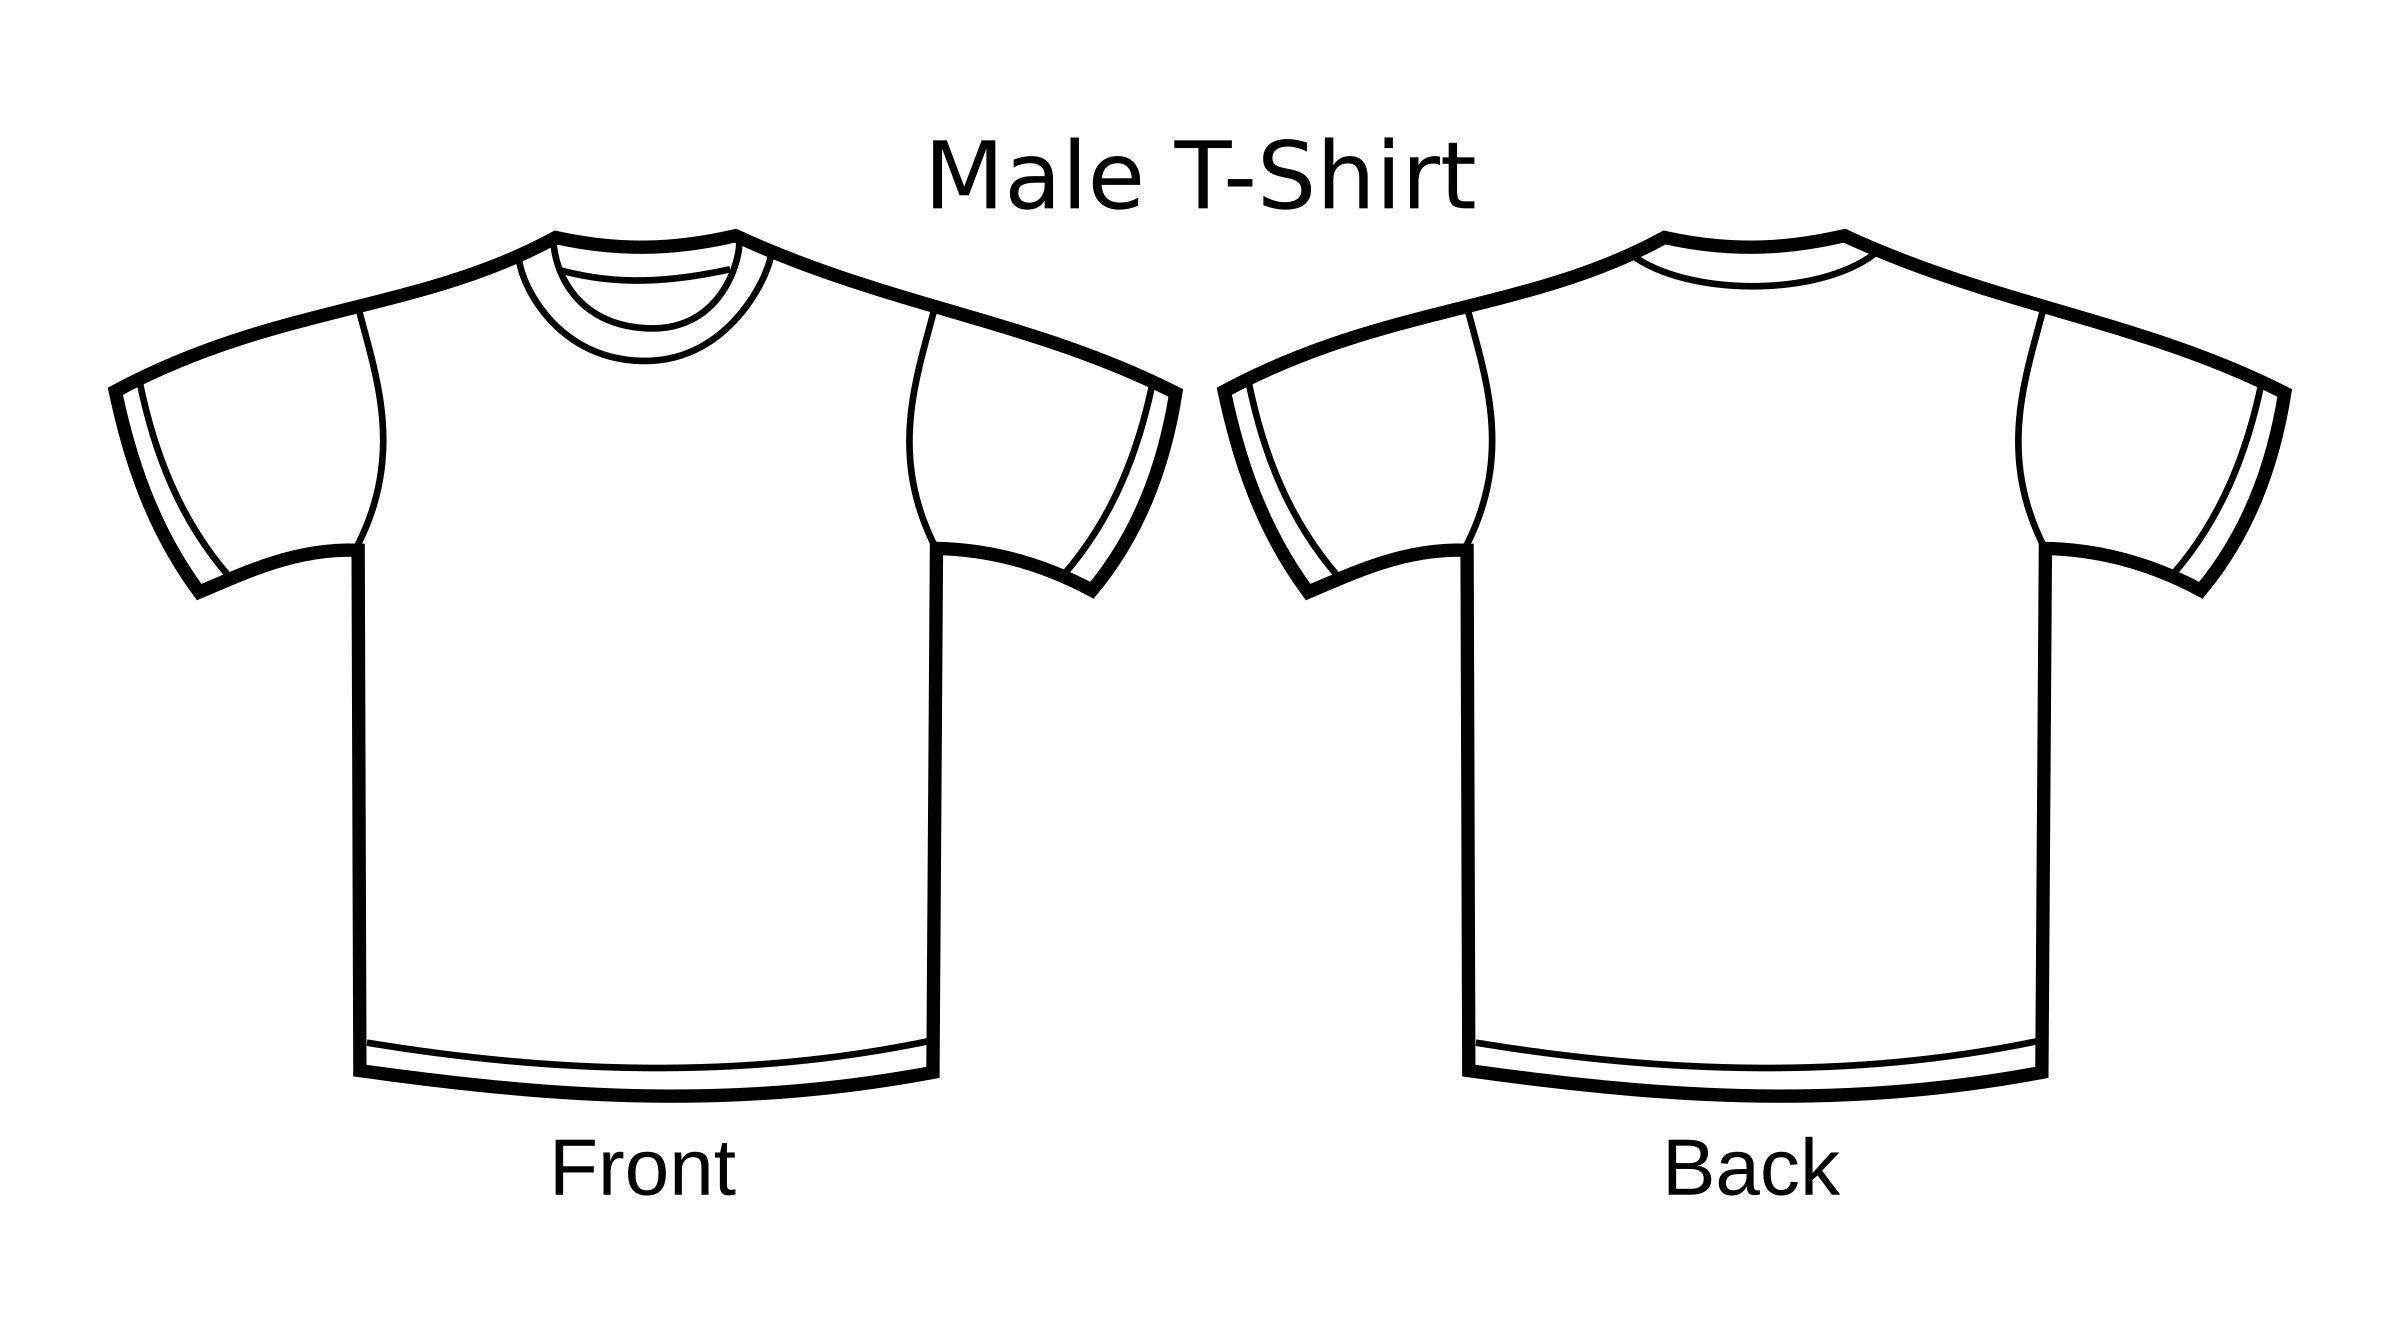 Black tshirt front png. Transparent images pluspng blank